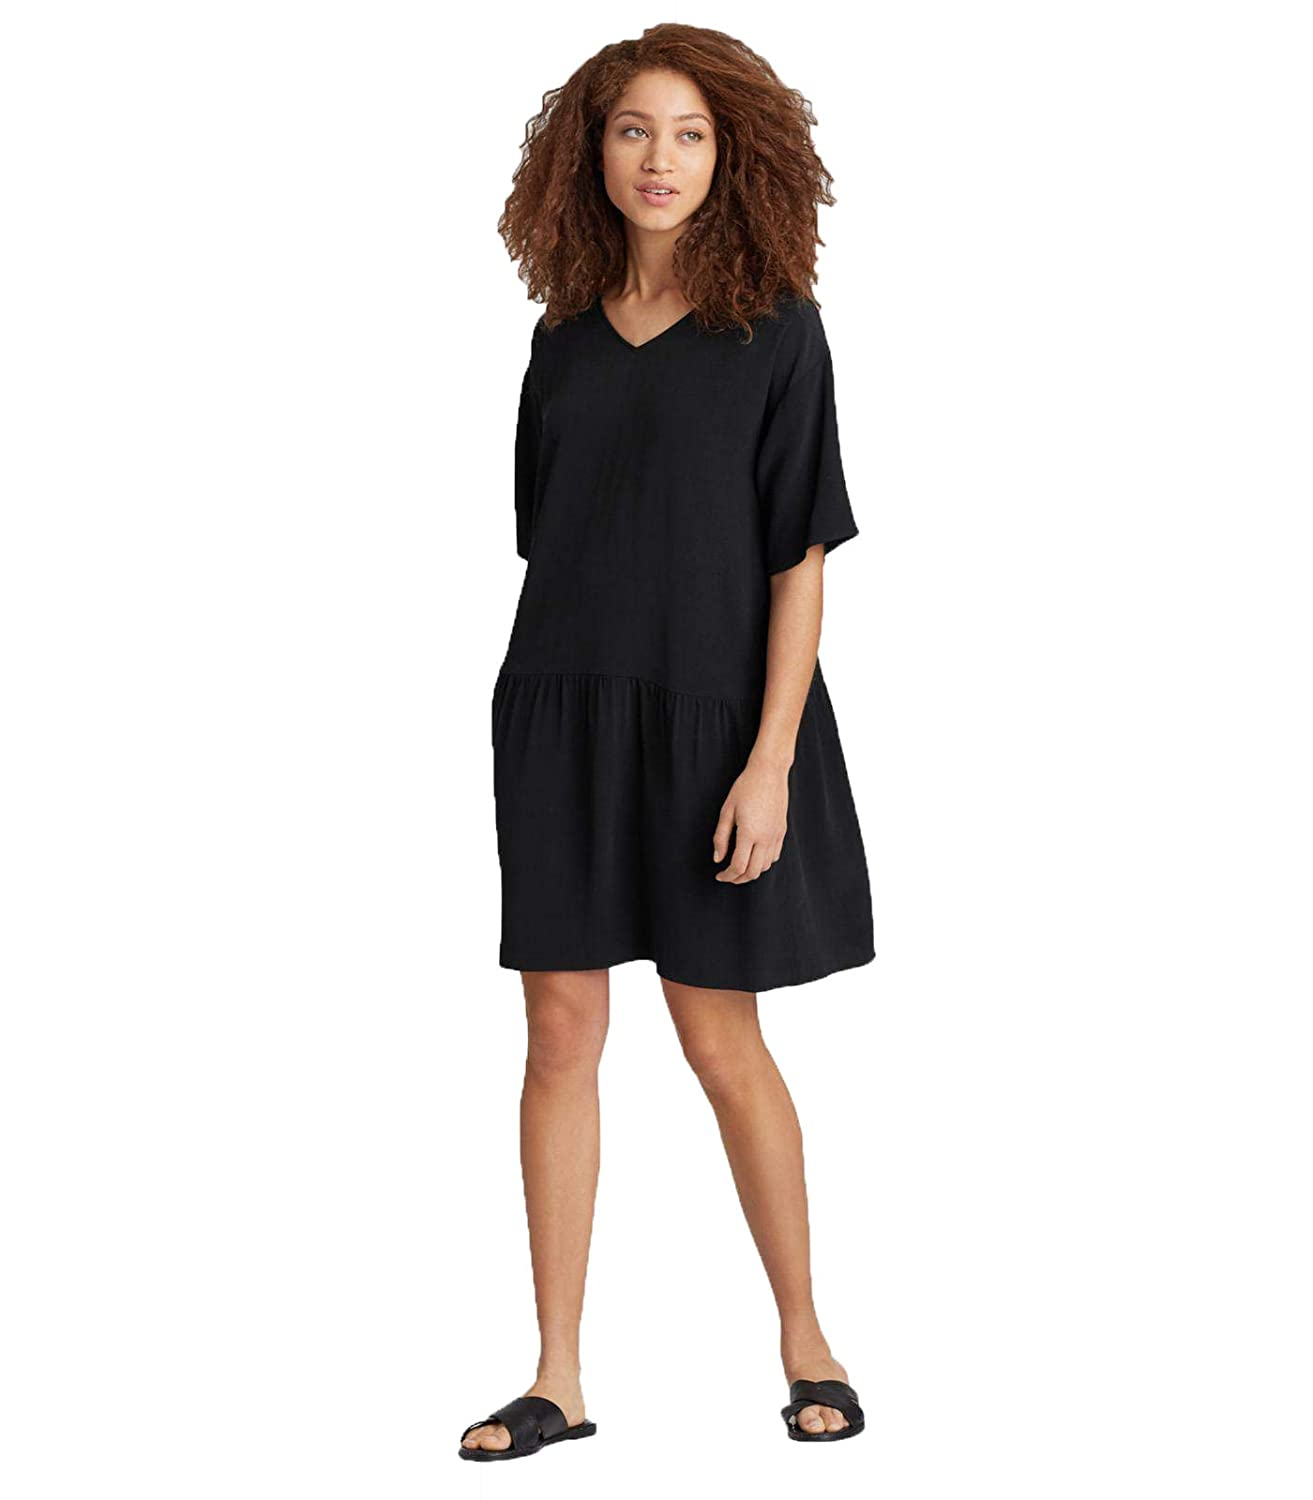 932c987d Eileen Fisher Tencel Viscose Crepe Drop - Waist Short Dress, Black - Small/ Petite at Amazon Women's Clothing store: